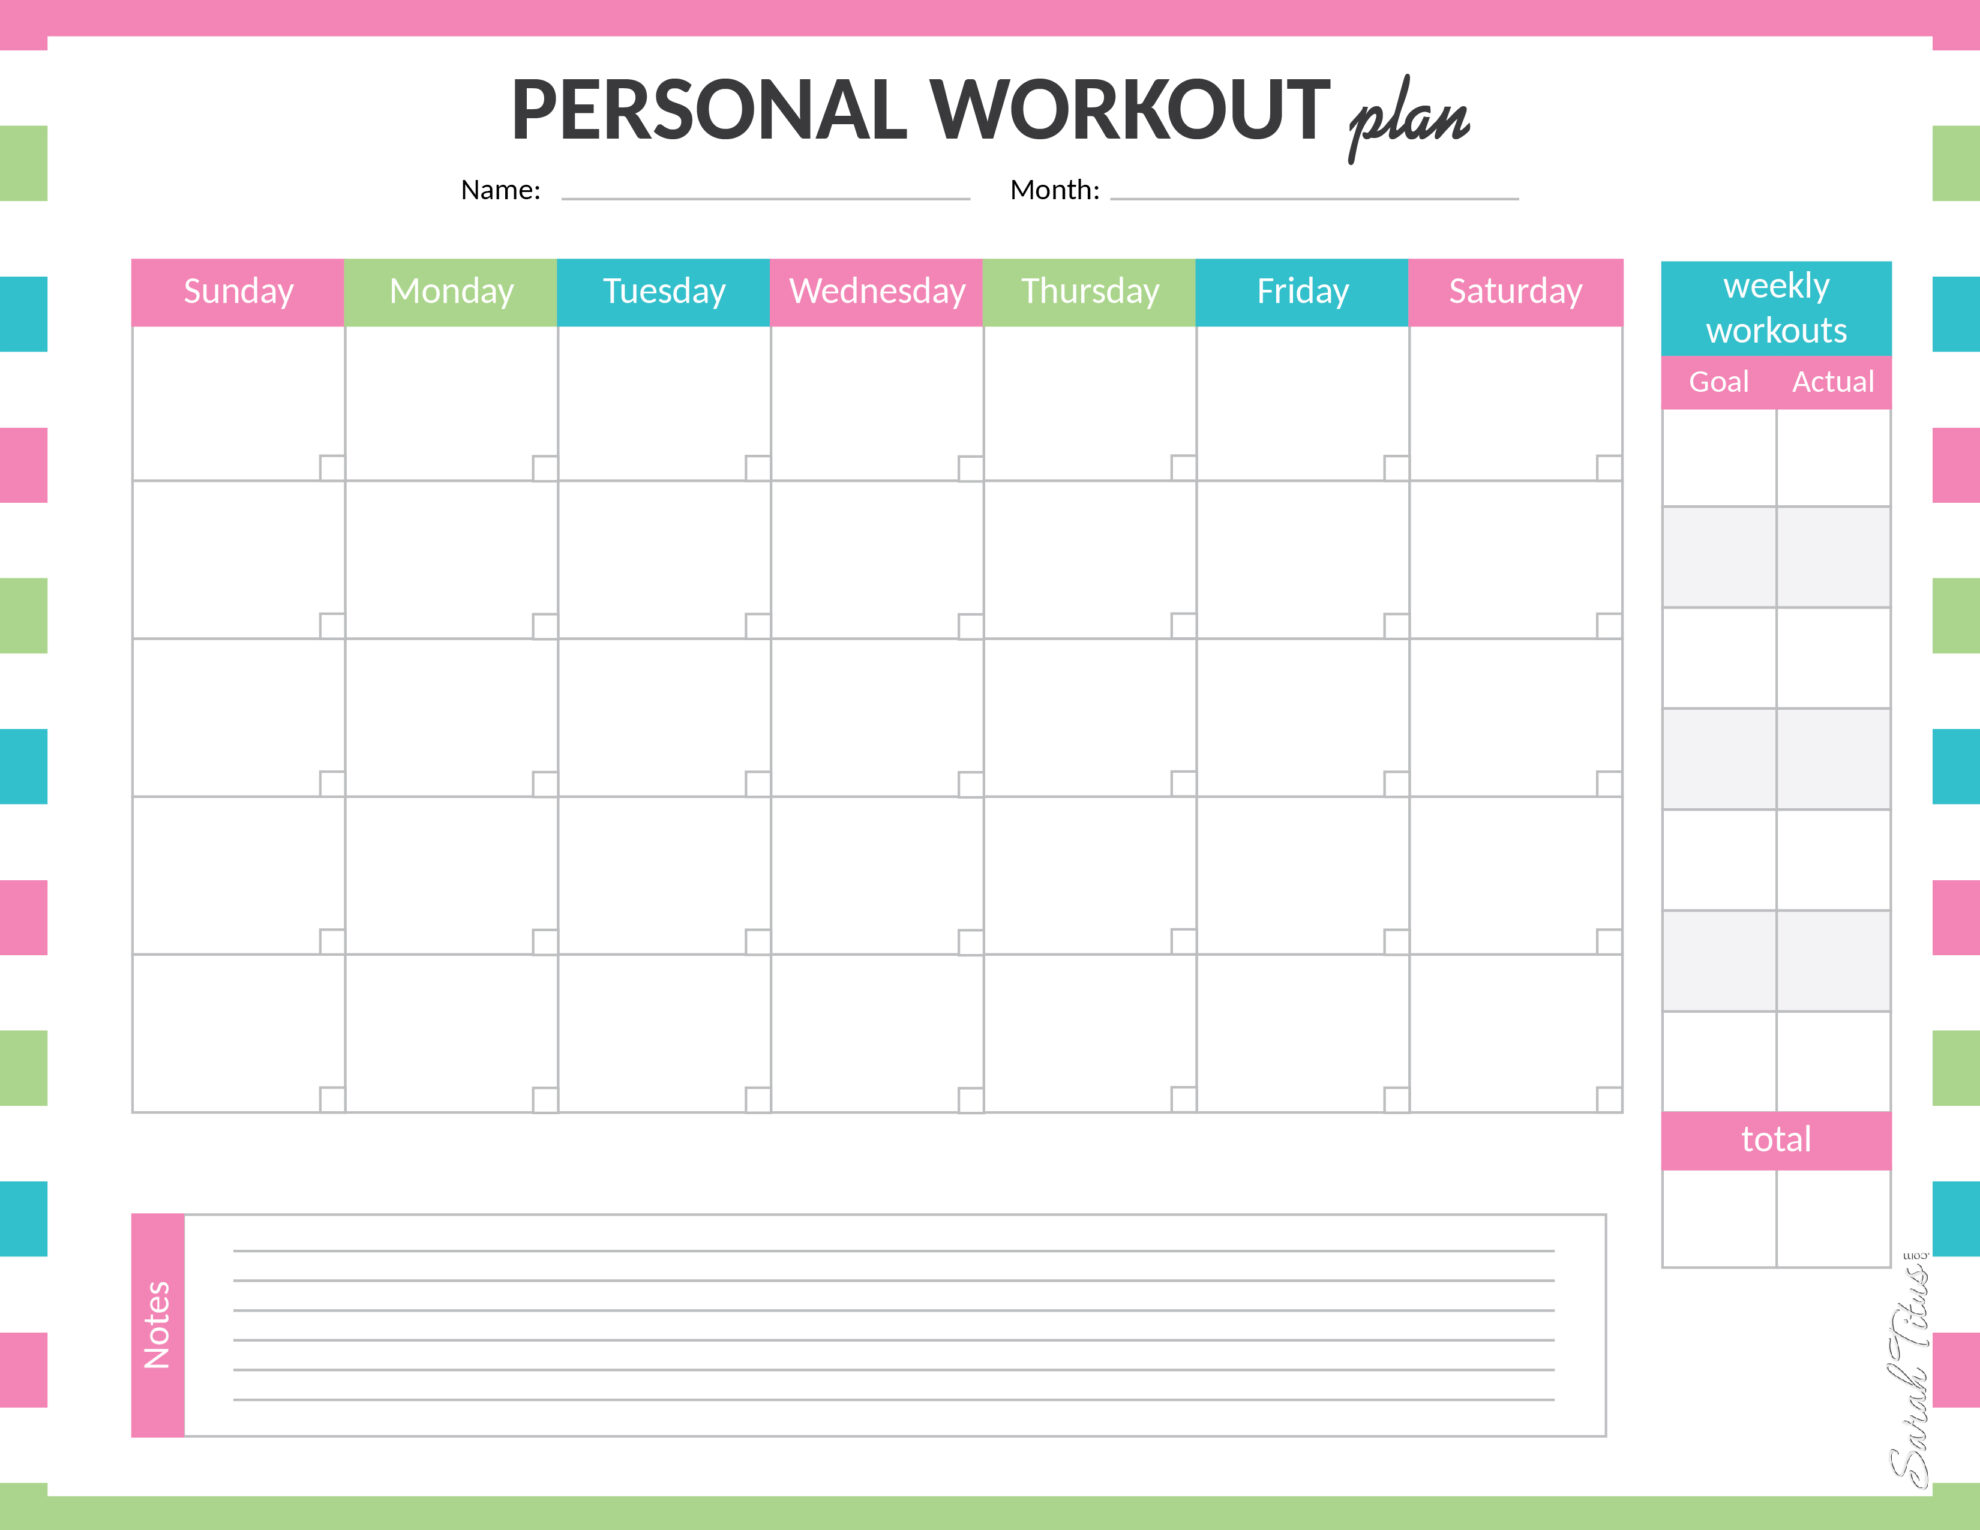 Medical Binder Personal Workout Plan